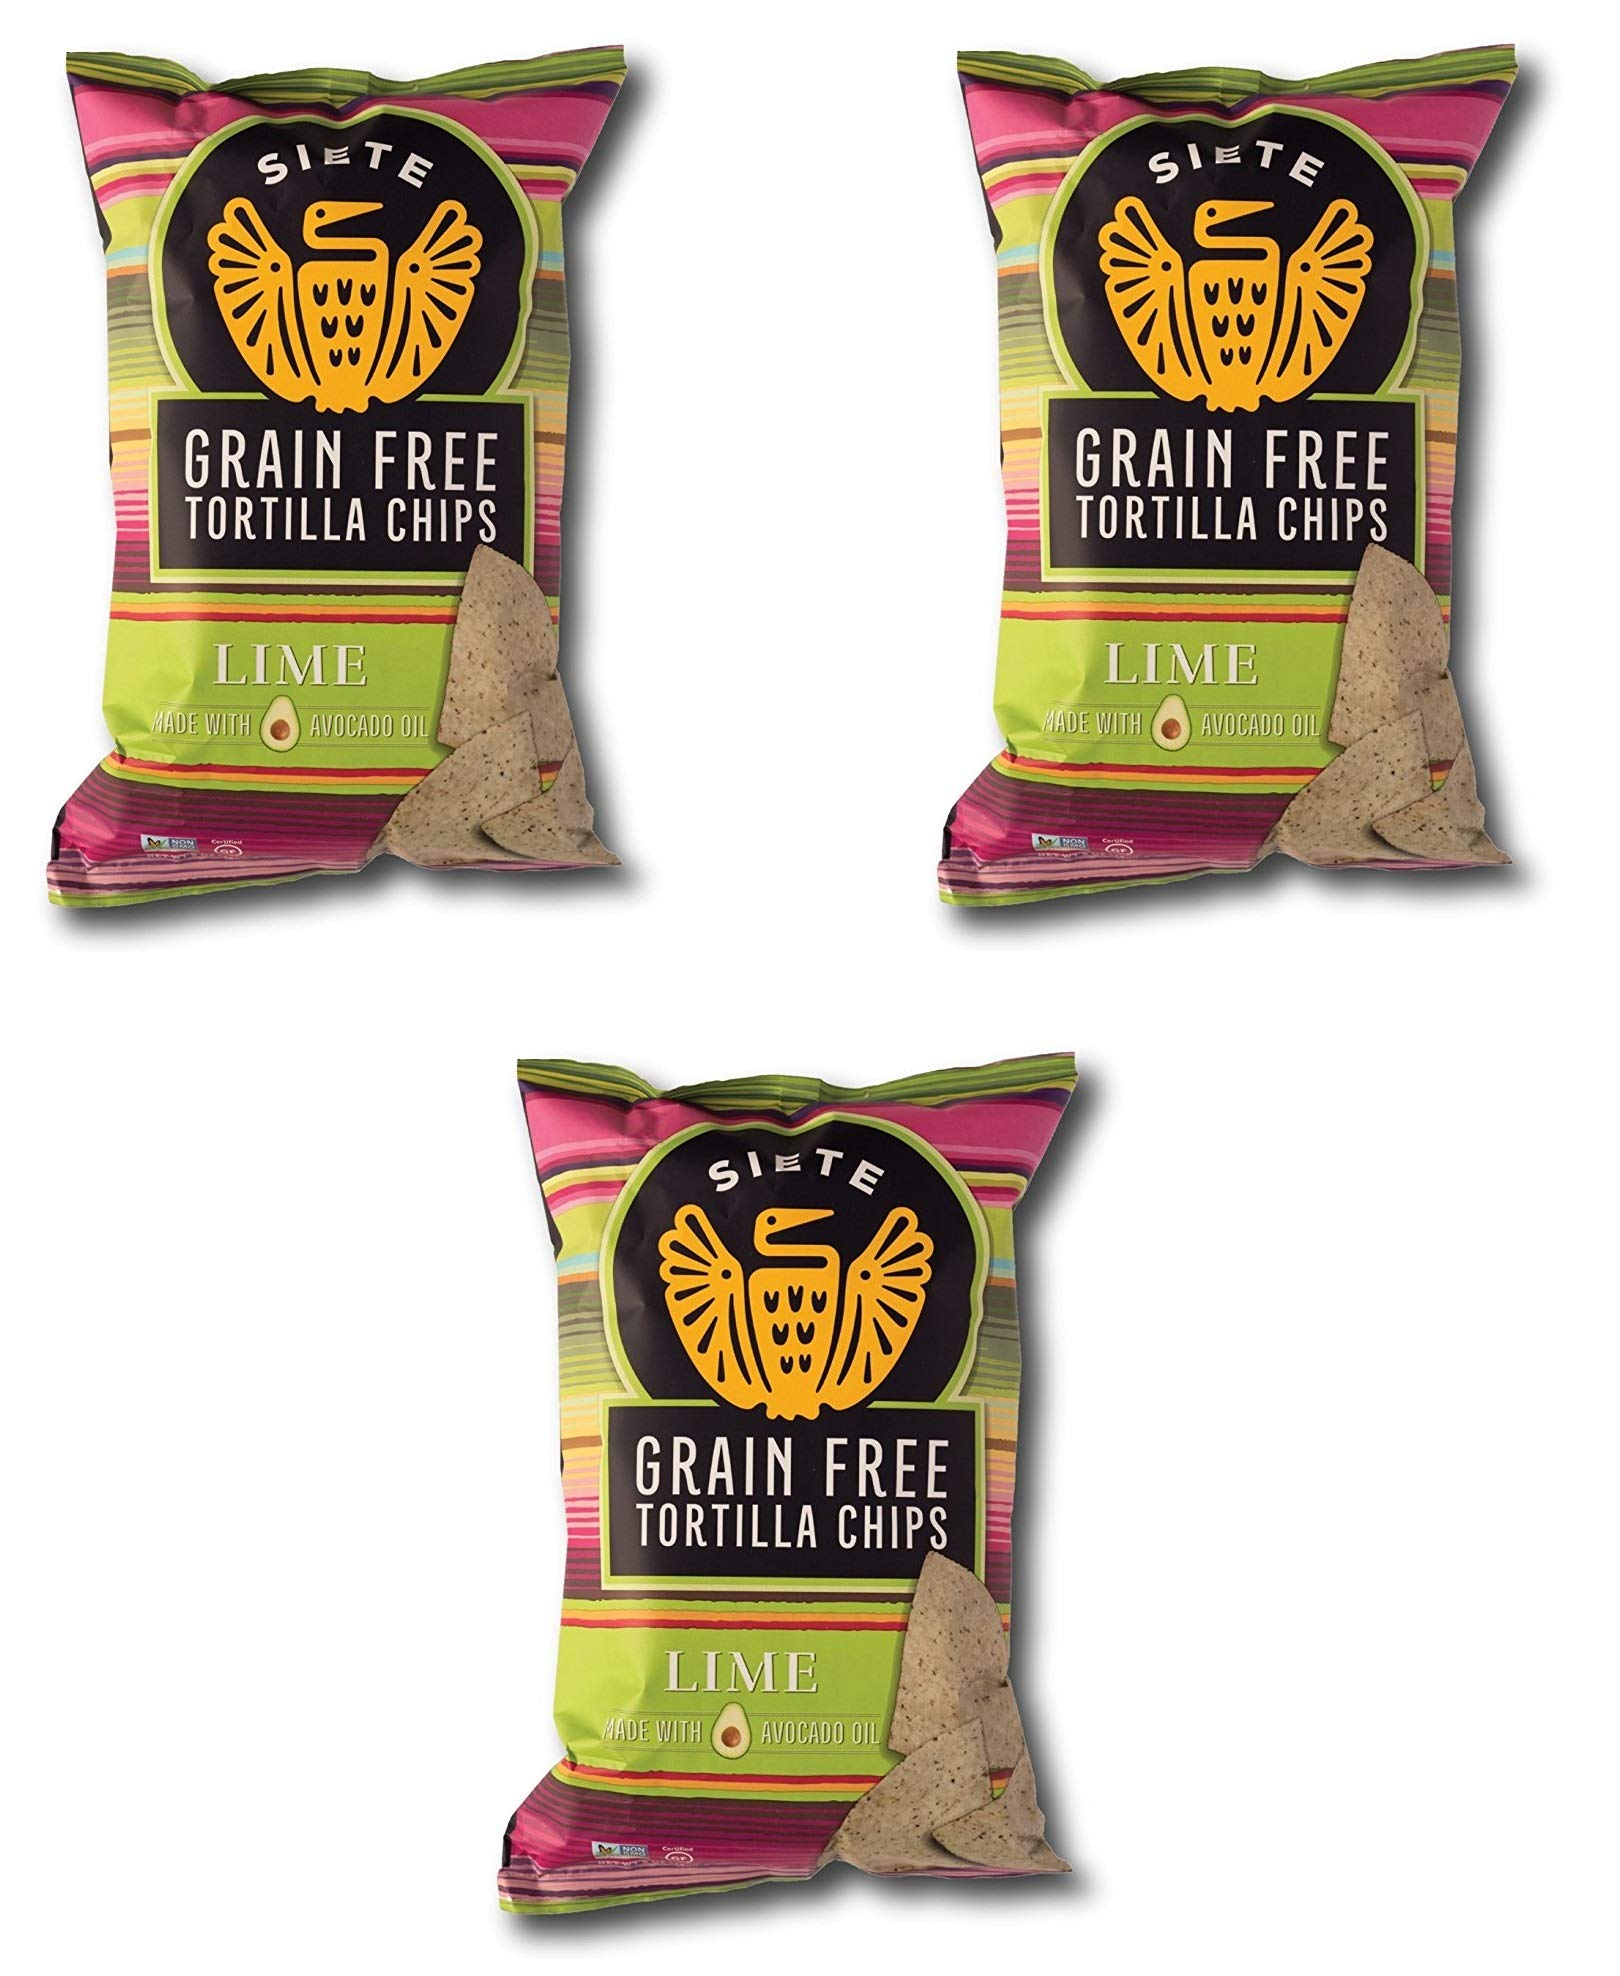 Siete Lime Grain Free Tortilla Chips, 5 oz bags, 3-Pack by Siete